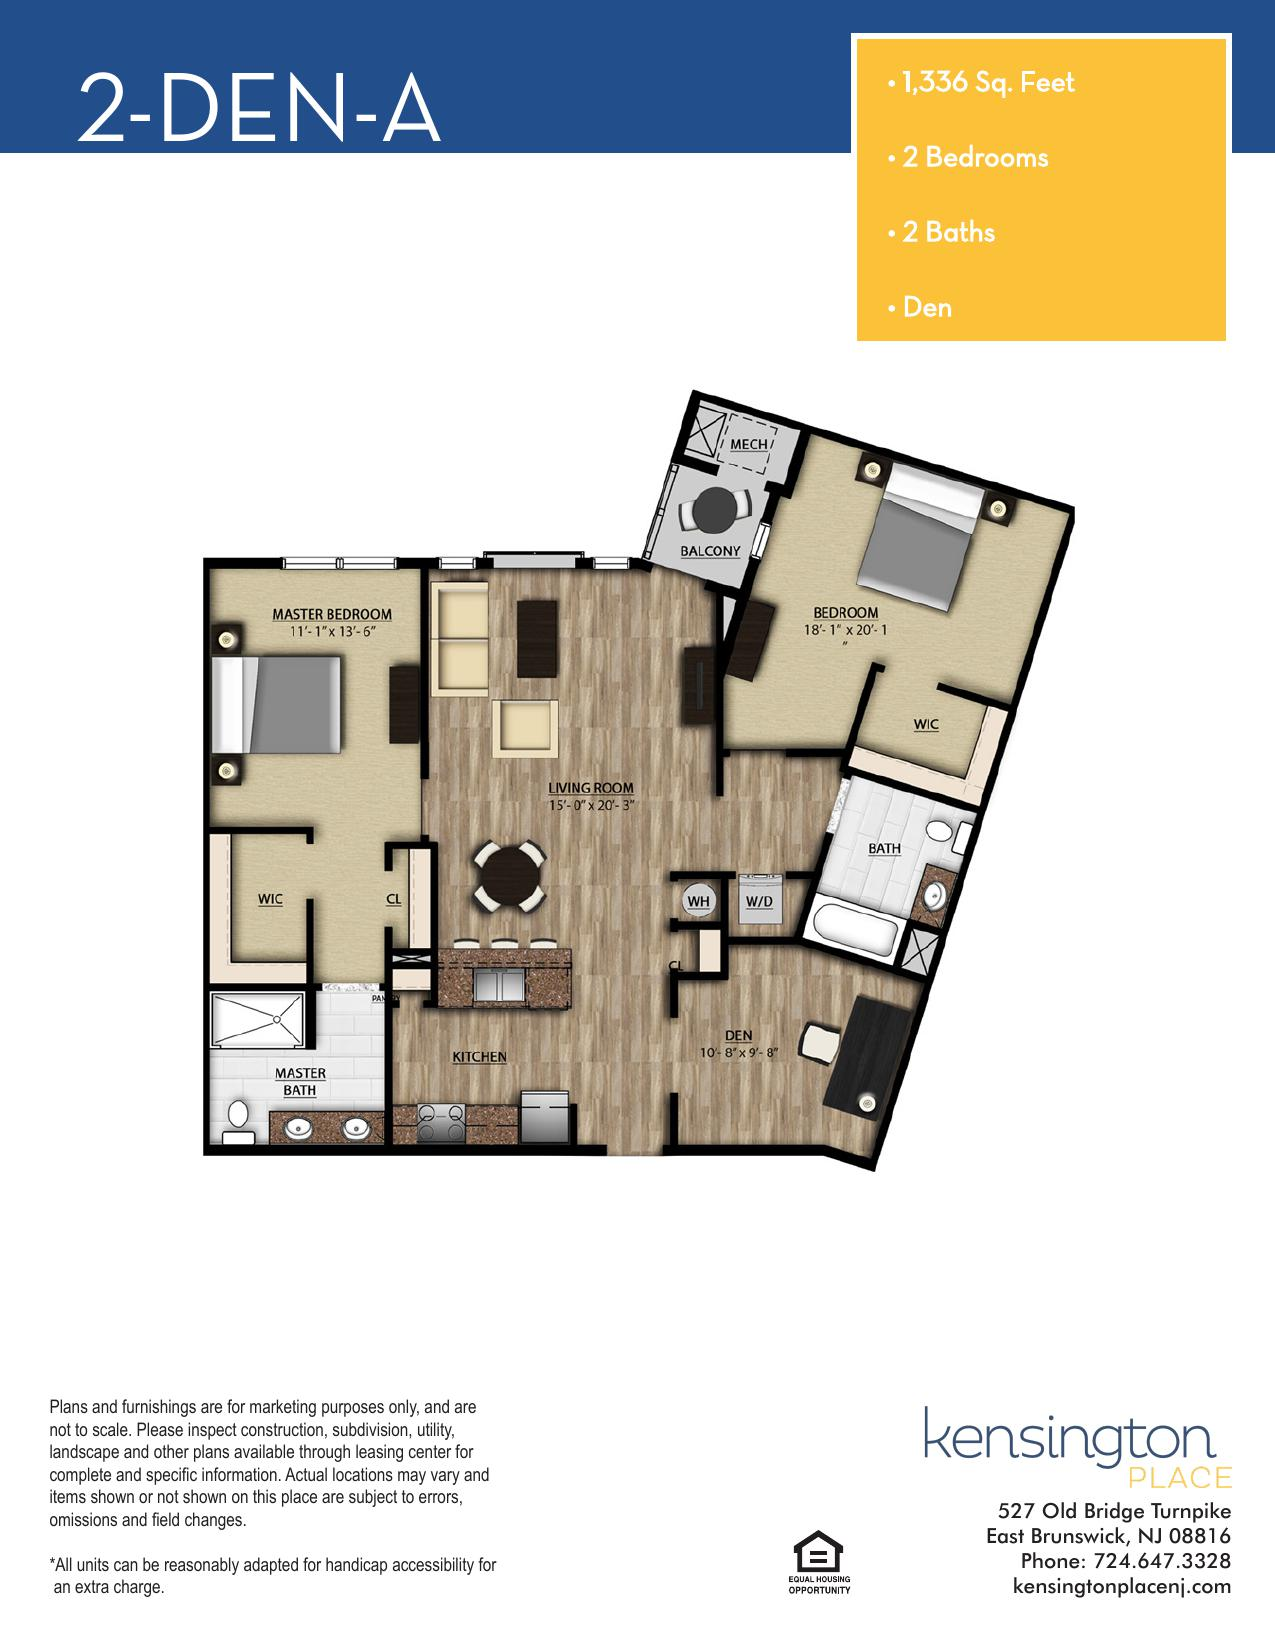 2 DEN A Floor Plan